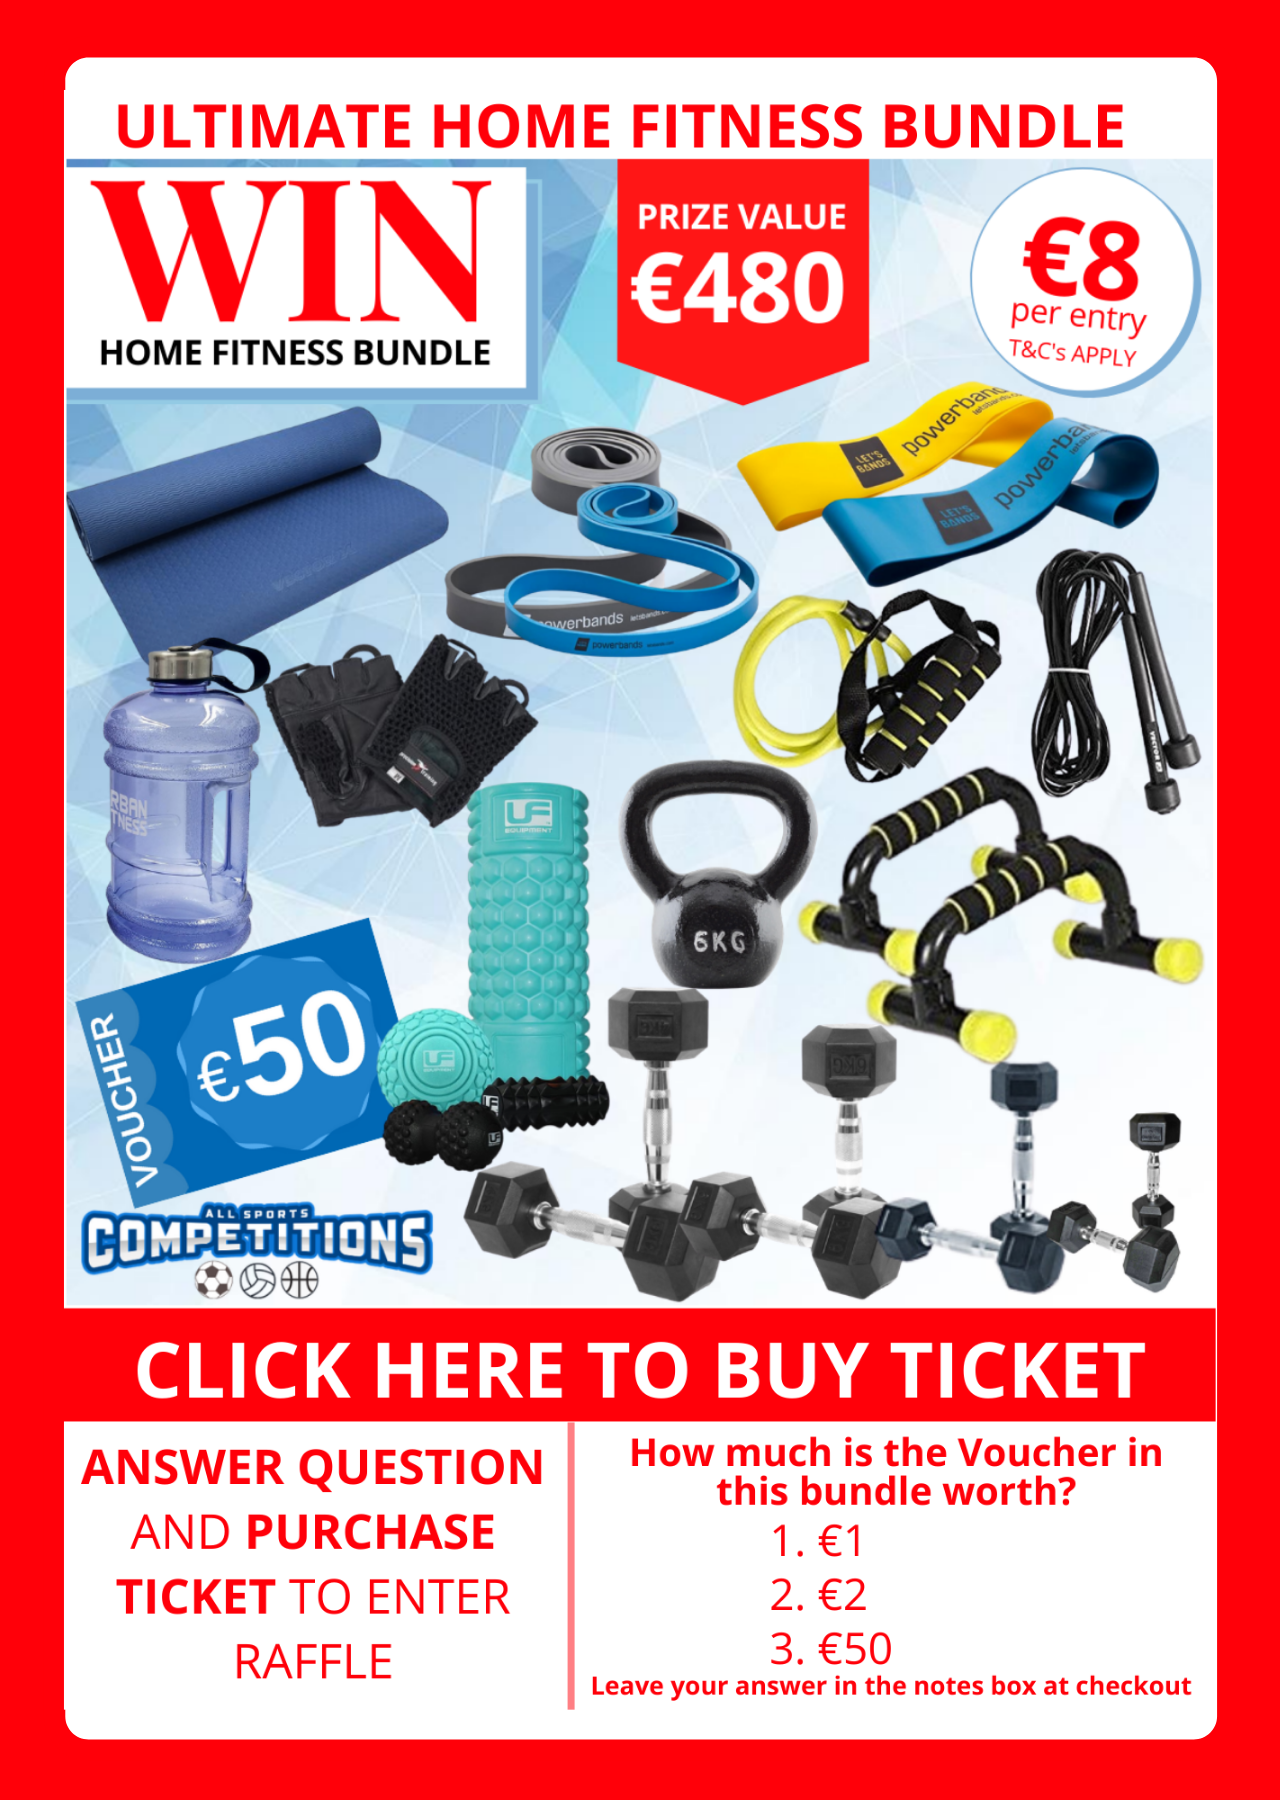 WIN the Ultimate Fitness Bundle for only €8